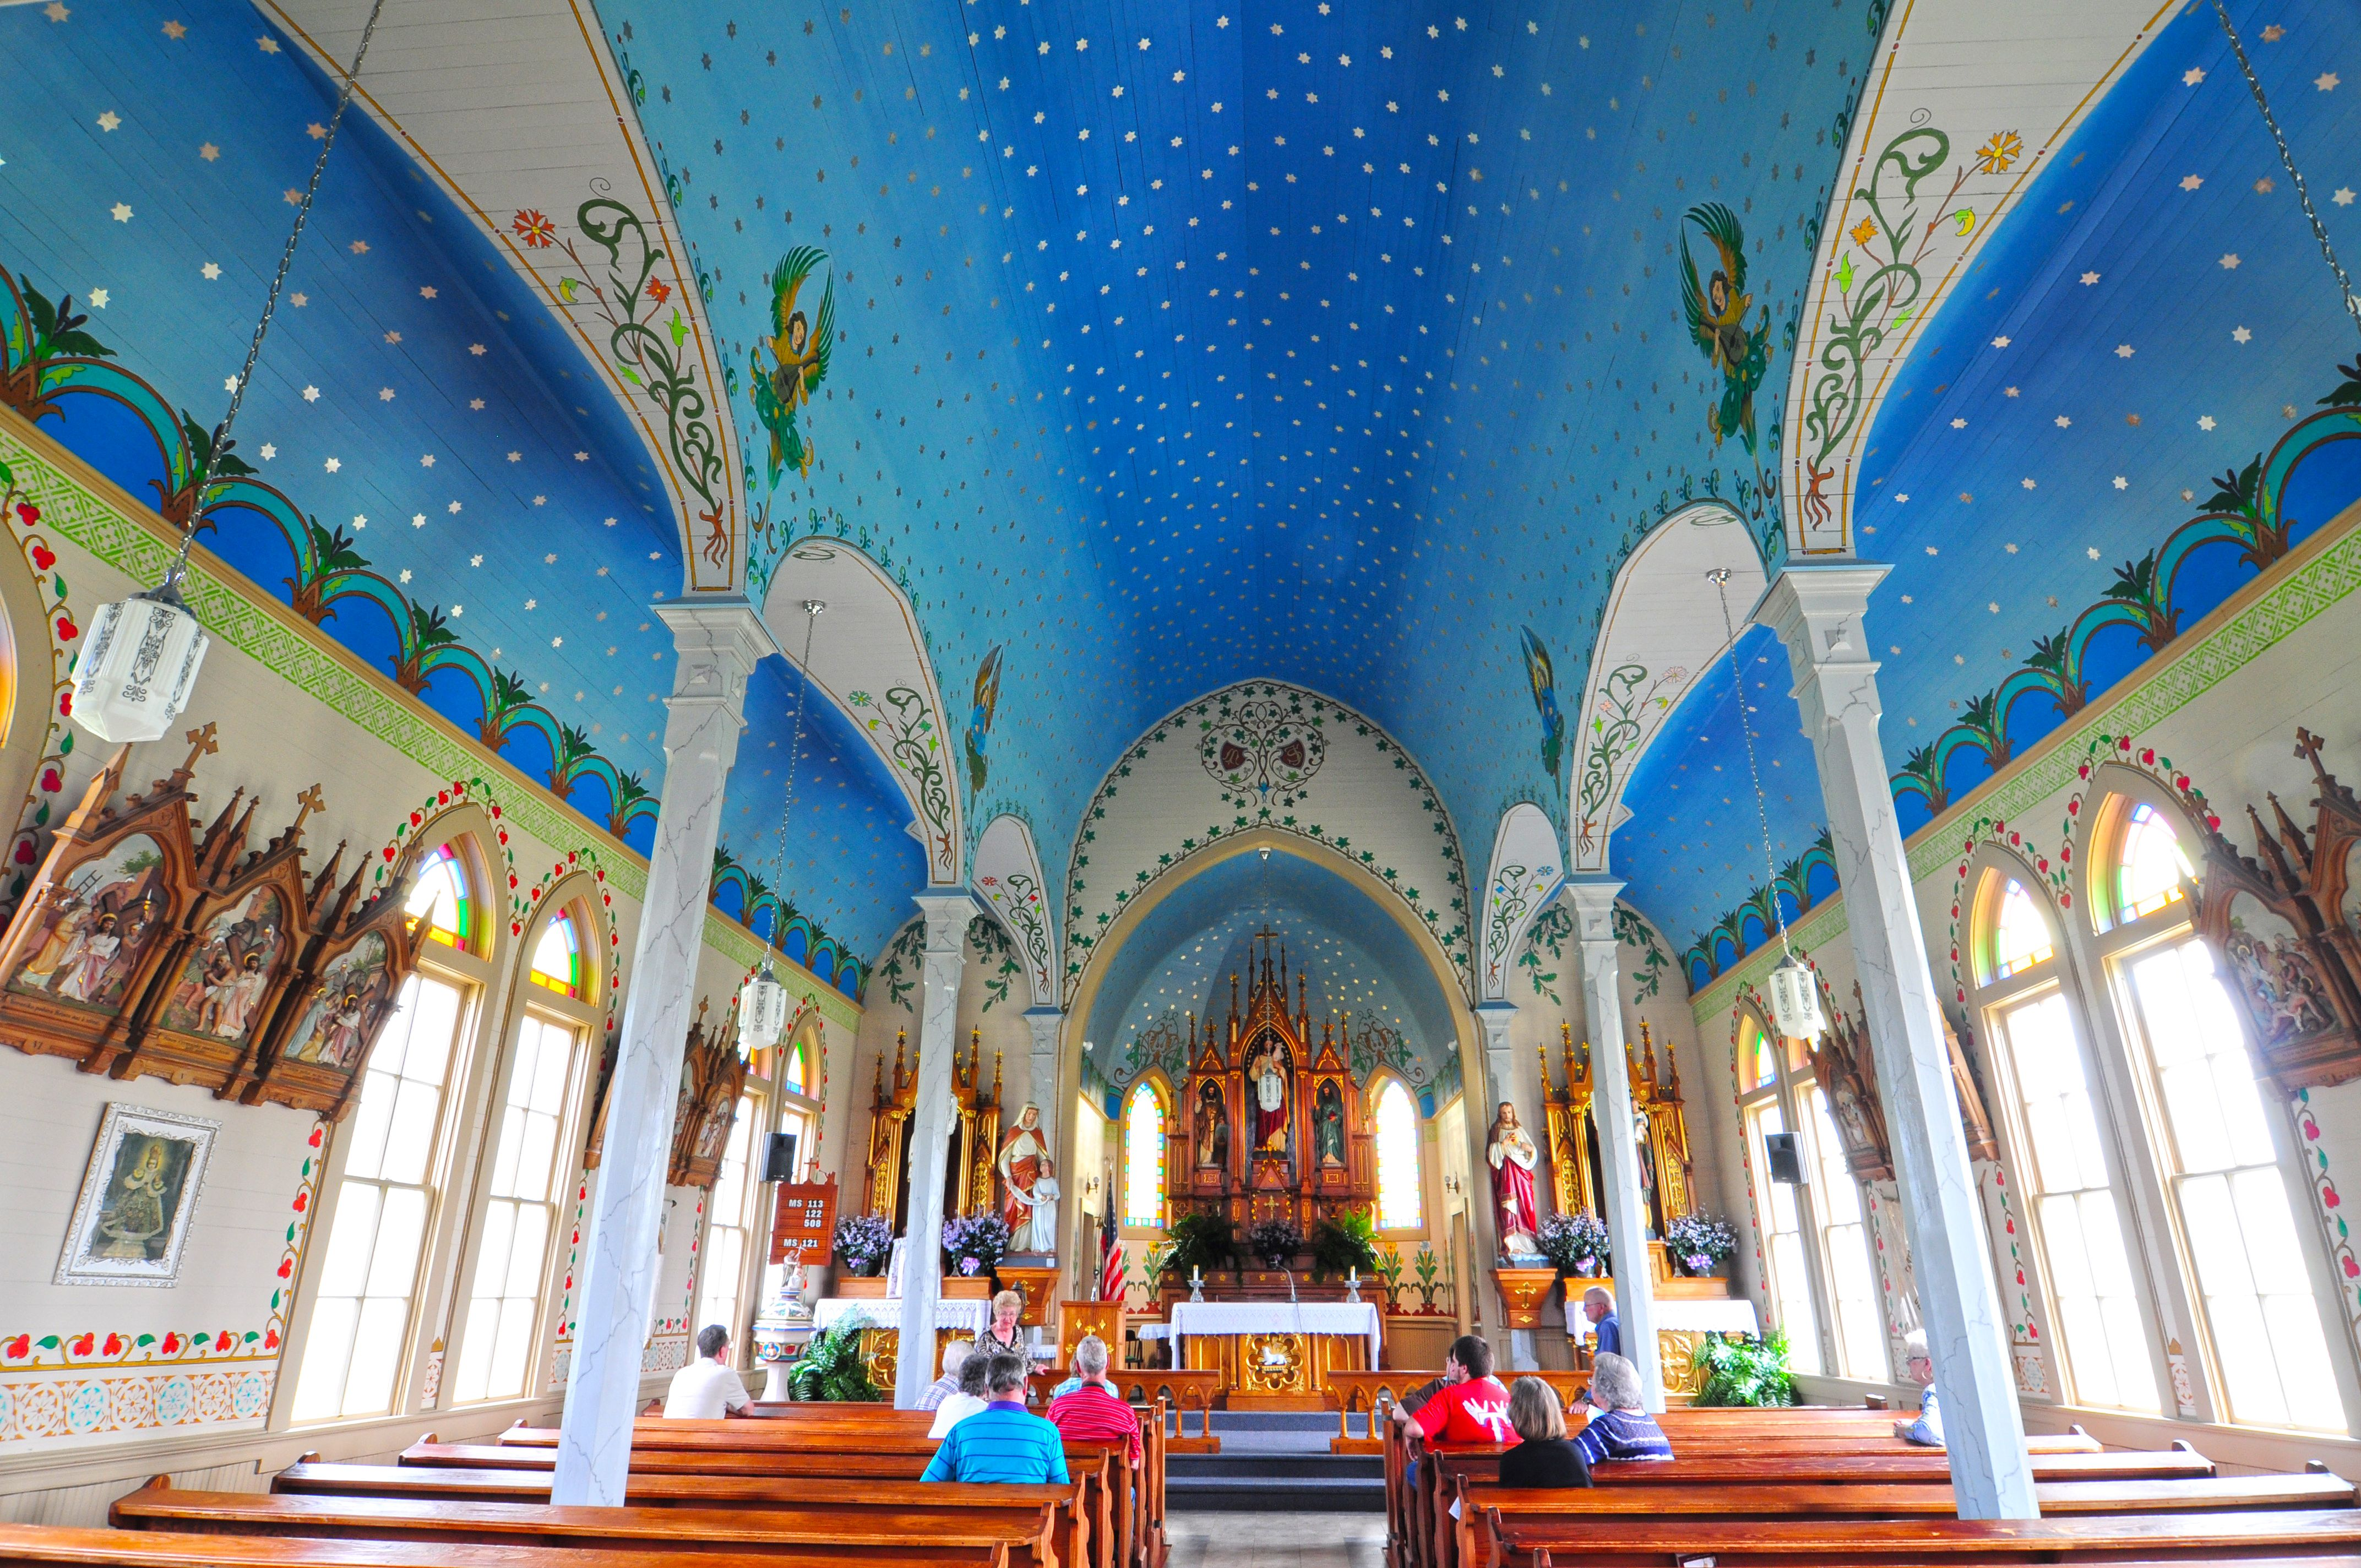 What I learned from the Painted Churches Pt.2 | AnthonySvajda.com